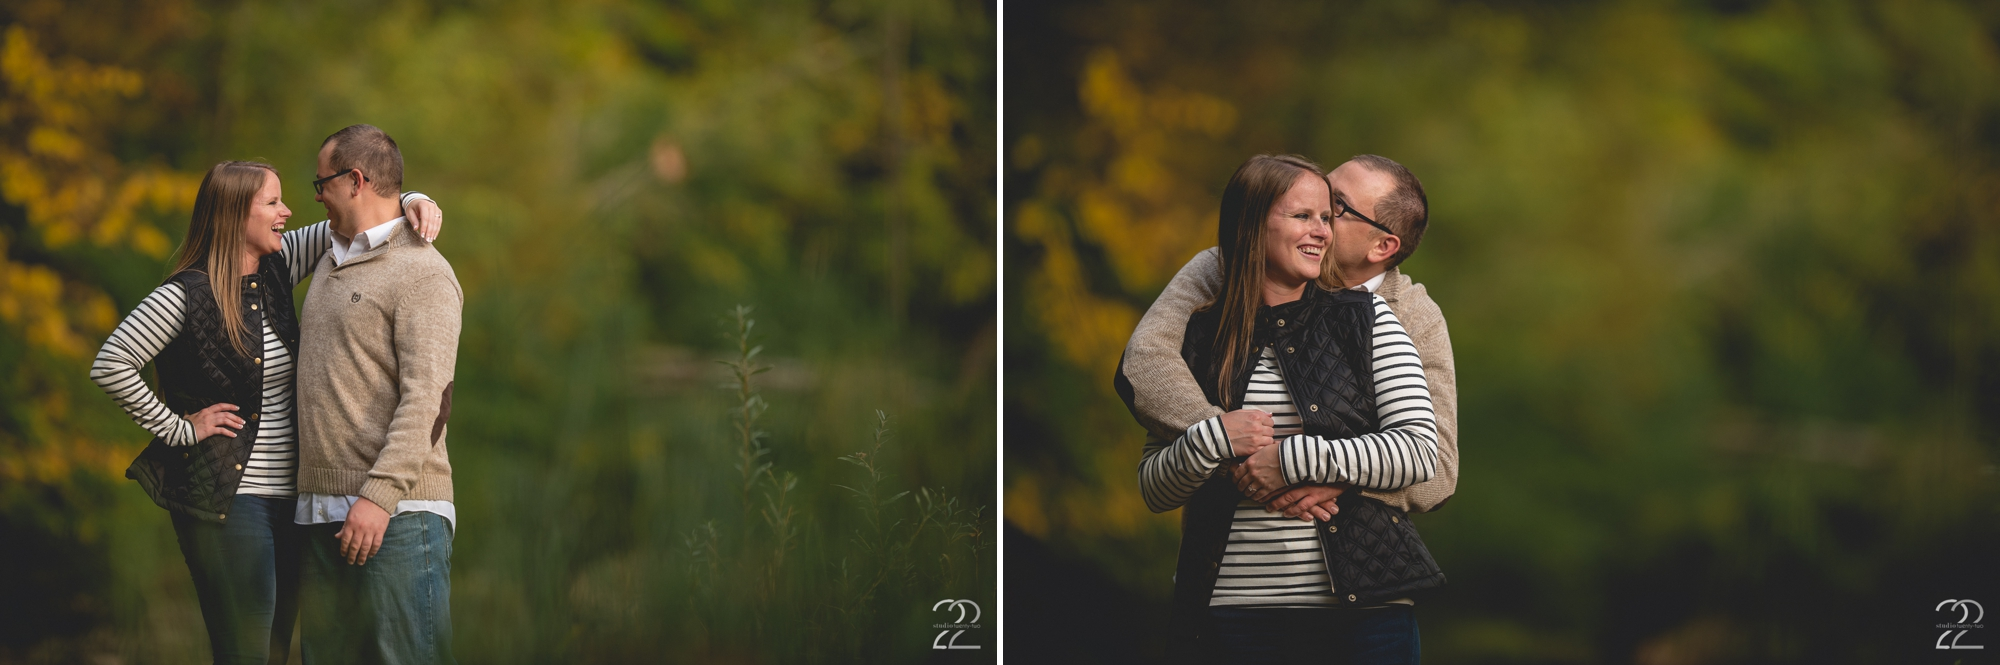 Nature Preserve Engagement Photos - Autumn Engagement Sessions